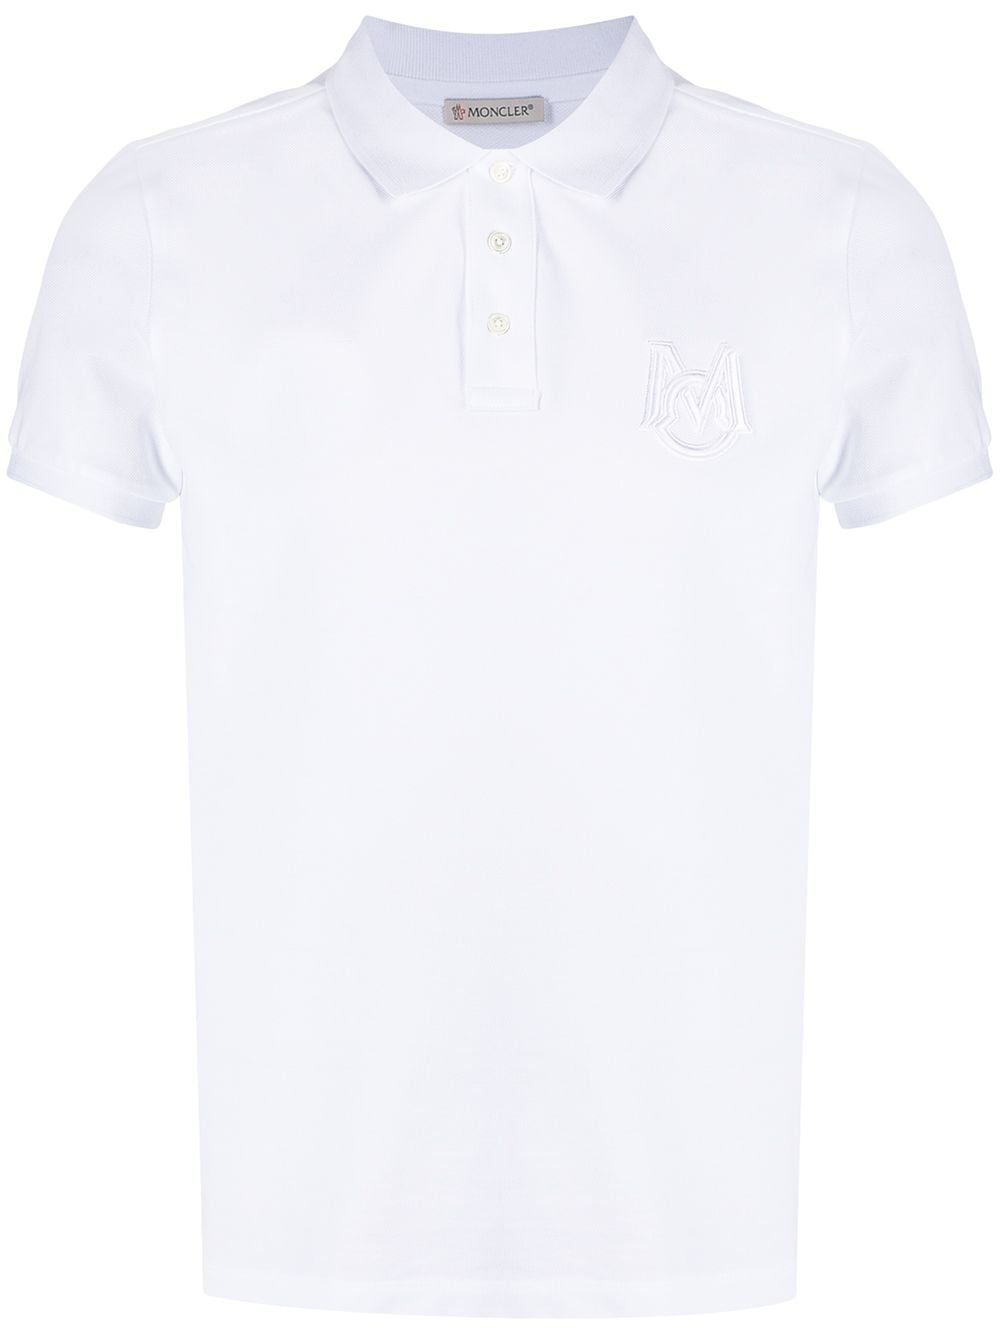 Moncler MONCLER MEN'S WHITE COTTON POLO SHIRT